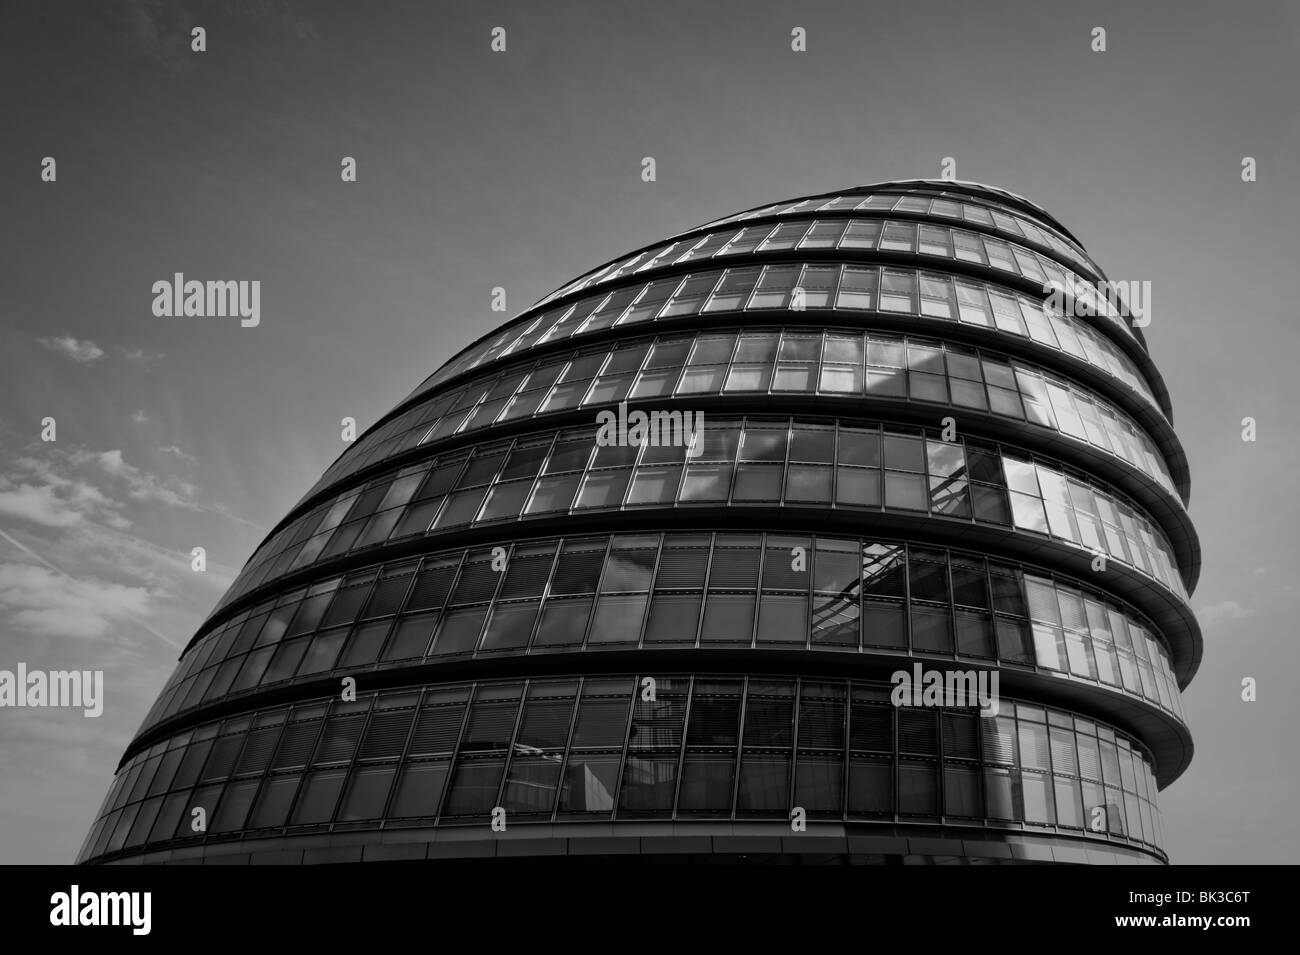 Government building by the river Thames in London - Stock Image